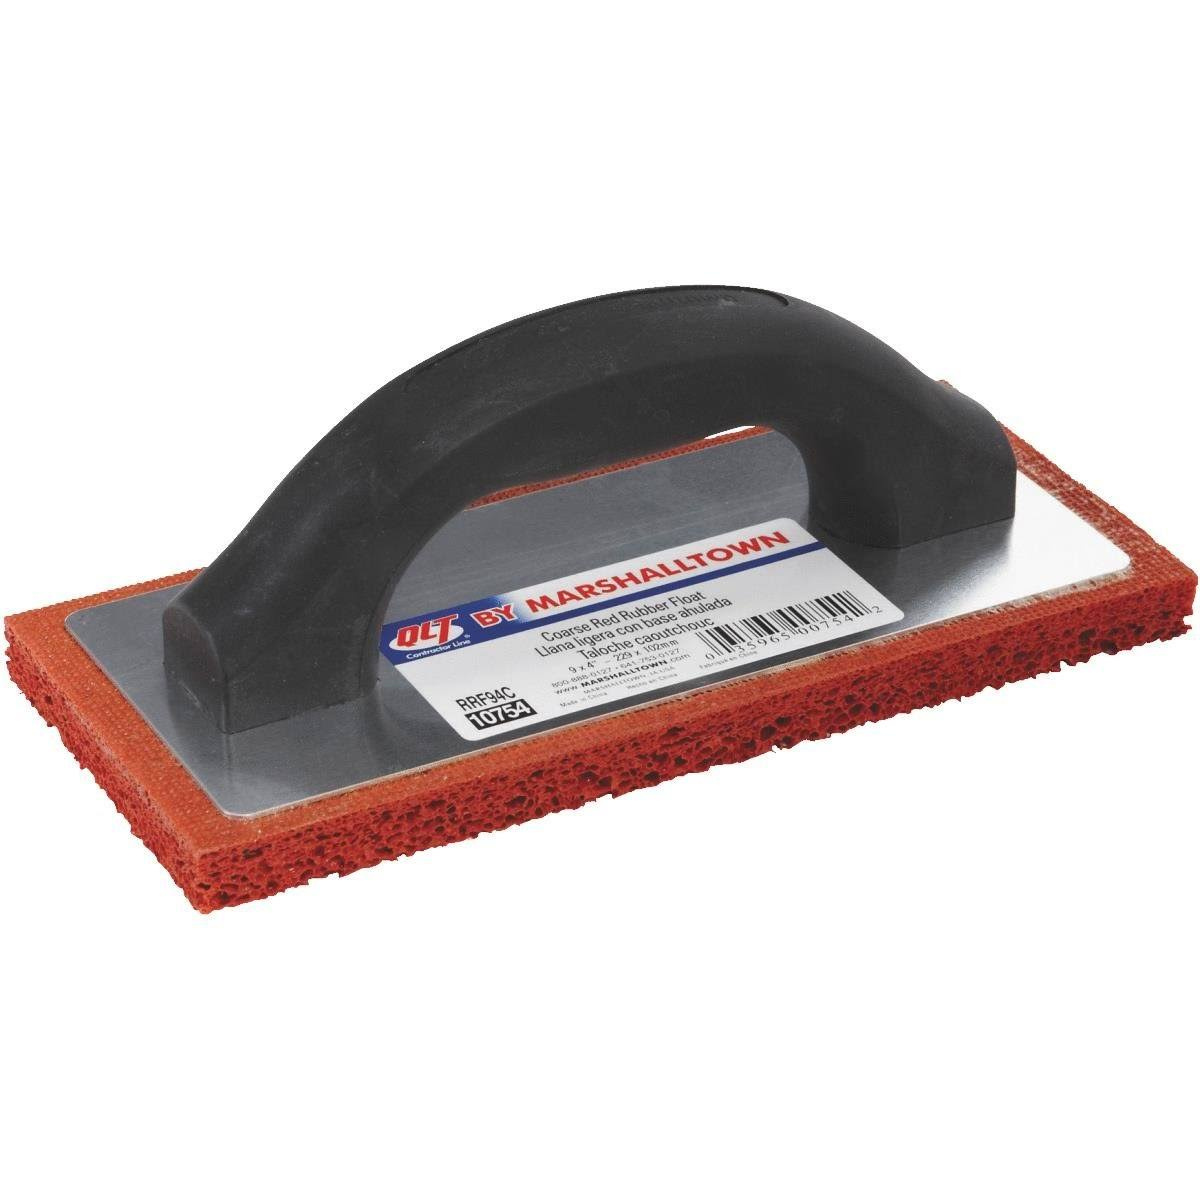 Marshalltown Rubber Float - 9 x 4 in, Red